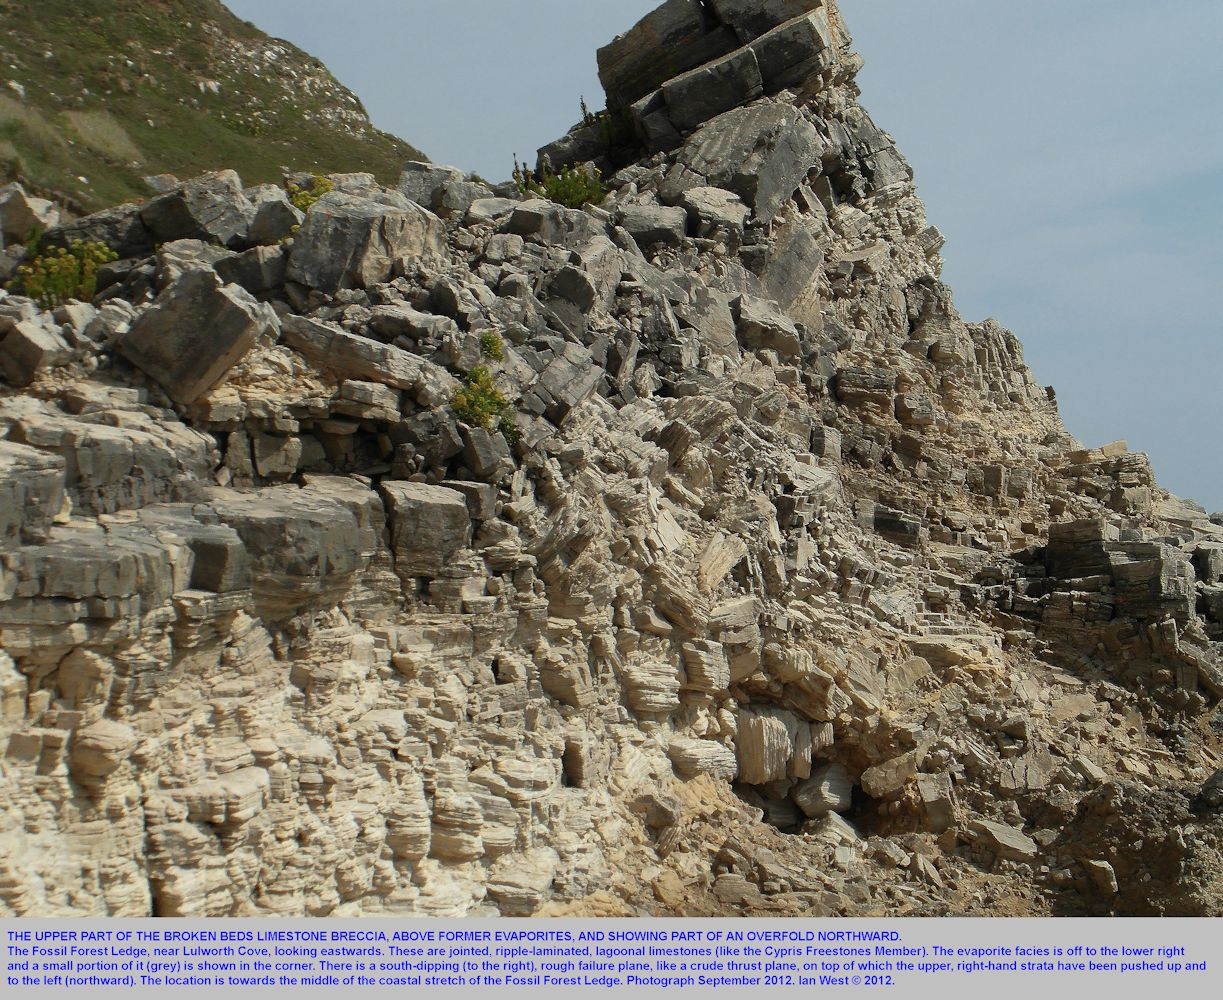 The Broken Beds, upper part, near the middle of the Fossil Forest ledge, east of Lulworth Cove, Dorset, September 2012